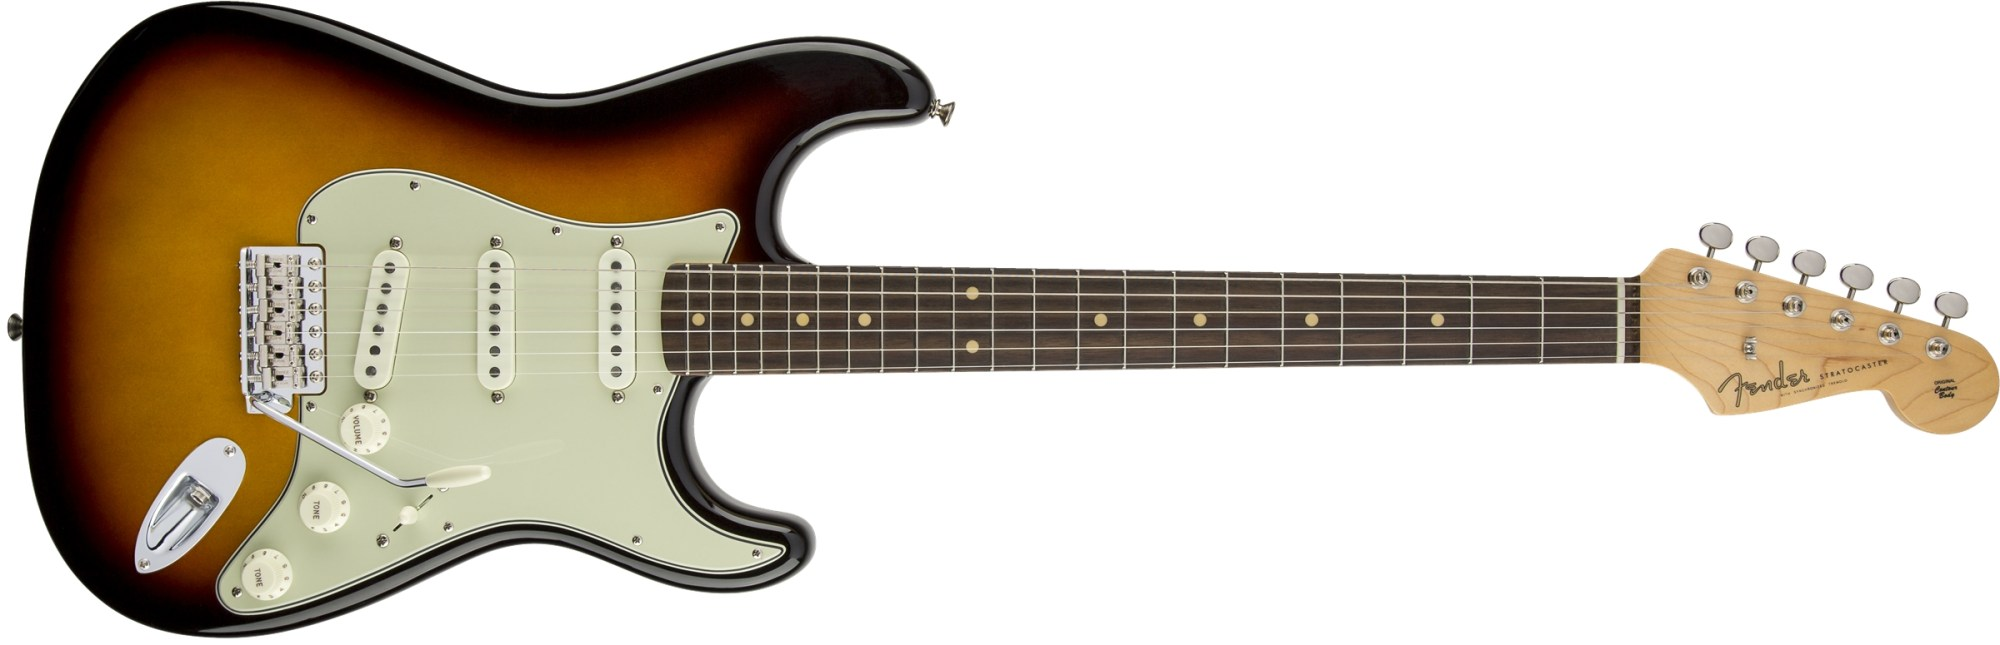 hight resolution of 60th anniversary stratocaster wiring diagram